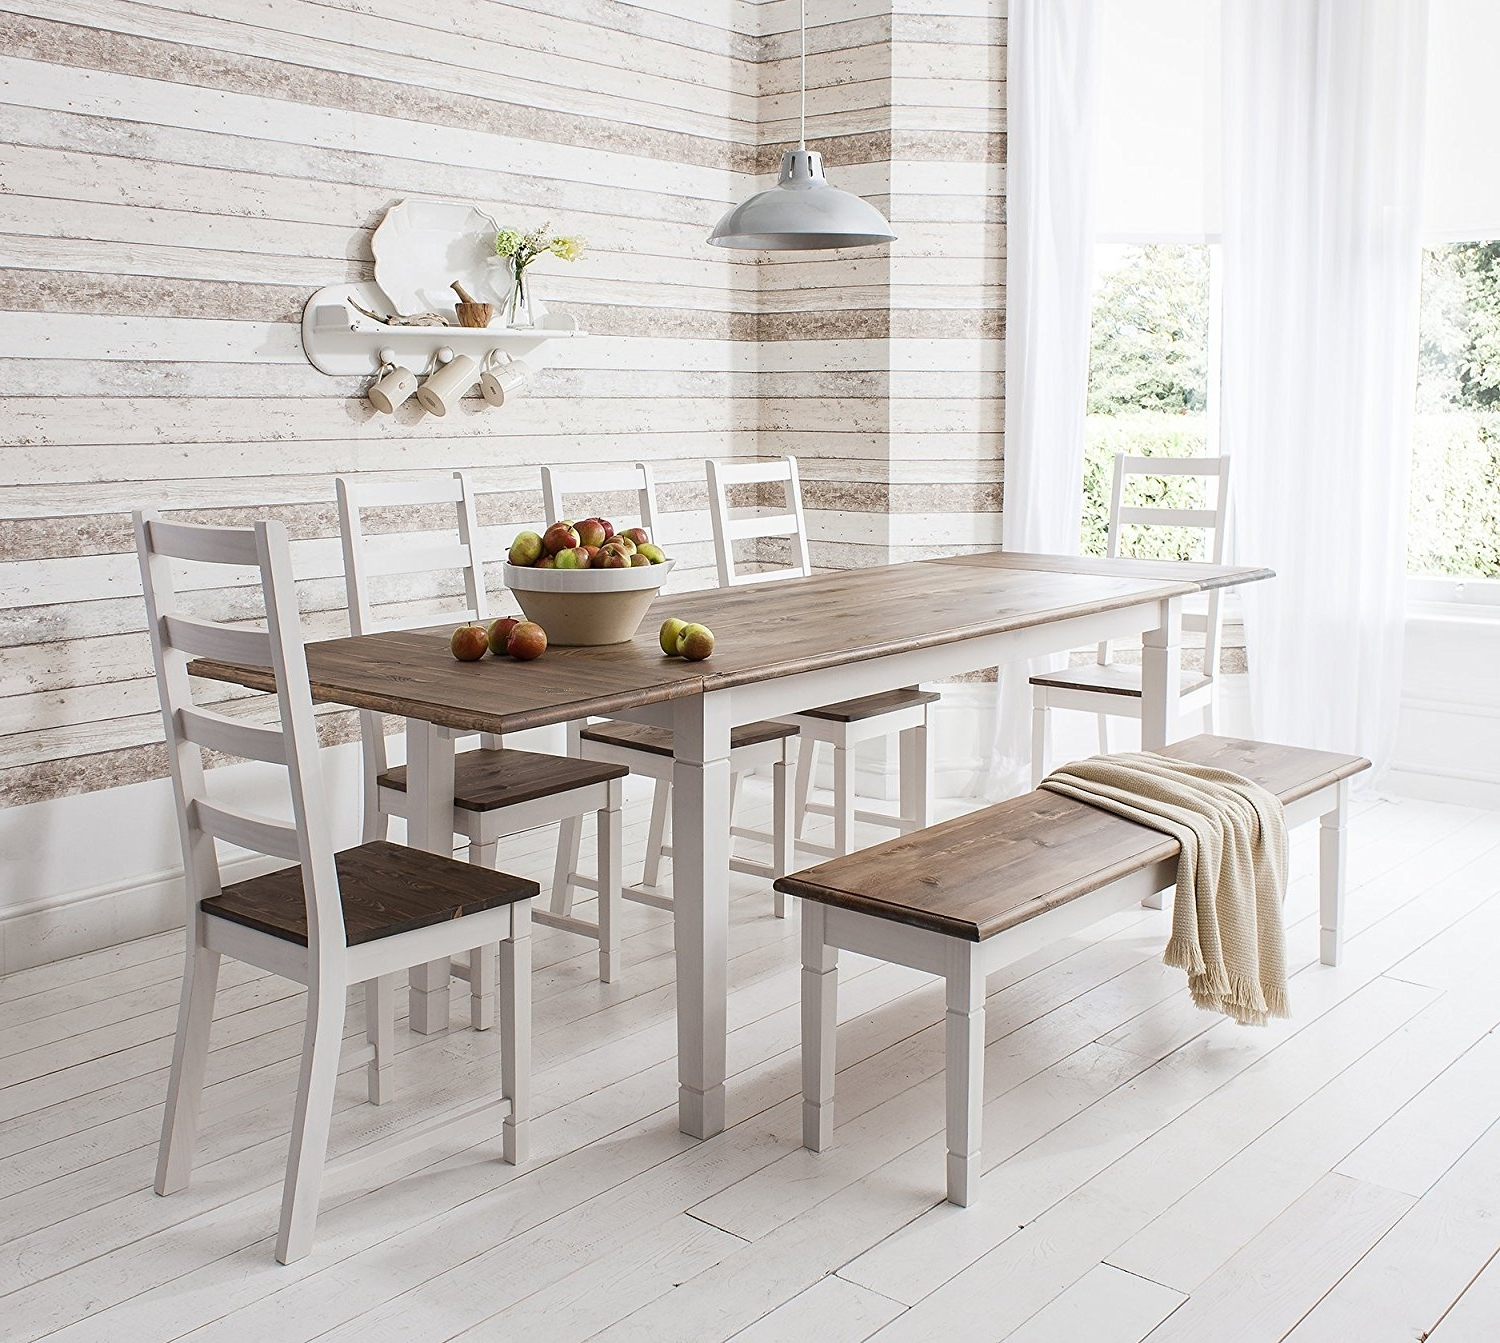 Black Extendable Dining Tables Sets With Regard To Well Known Table Black Table And Chairs Extending Dining Table Sets Uk Popular (View 21 of 25)